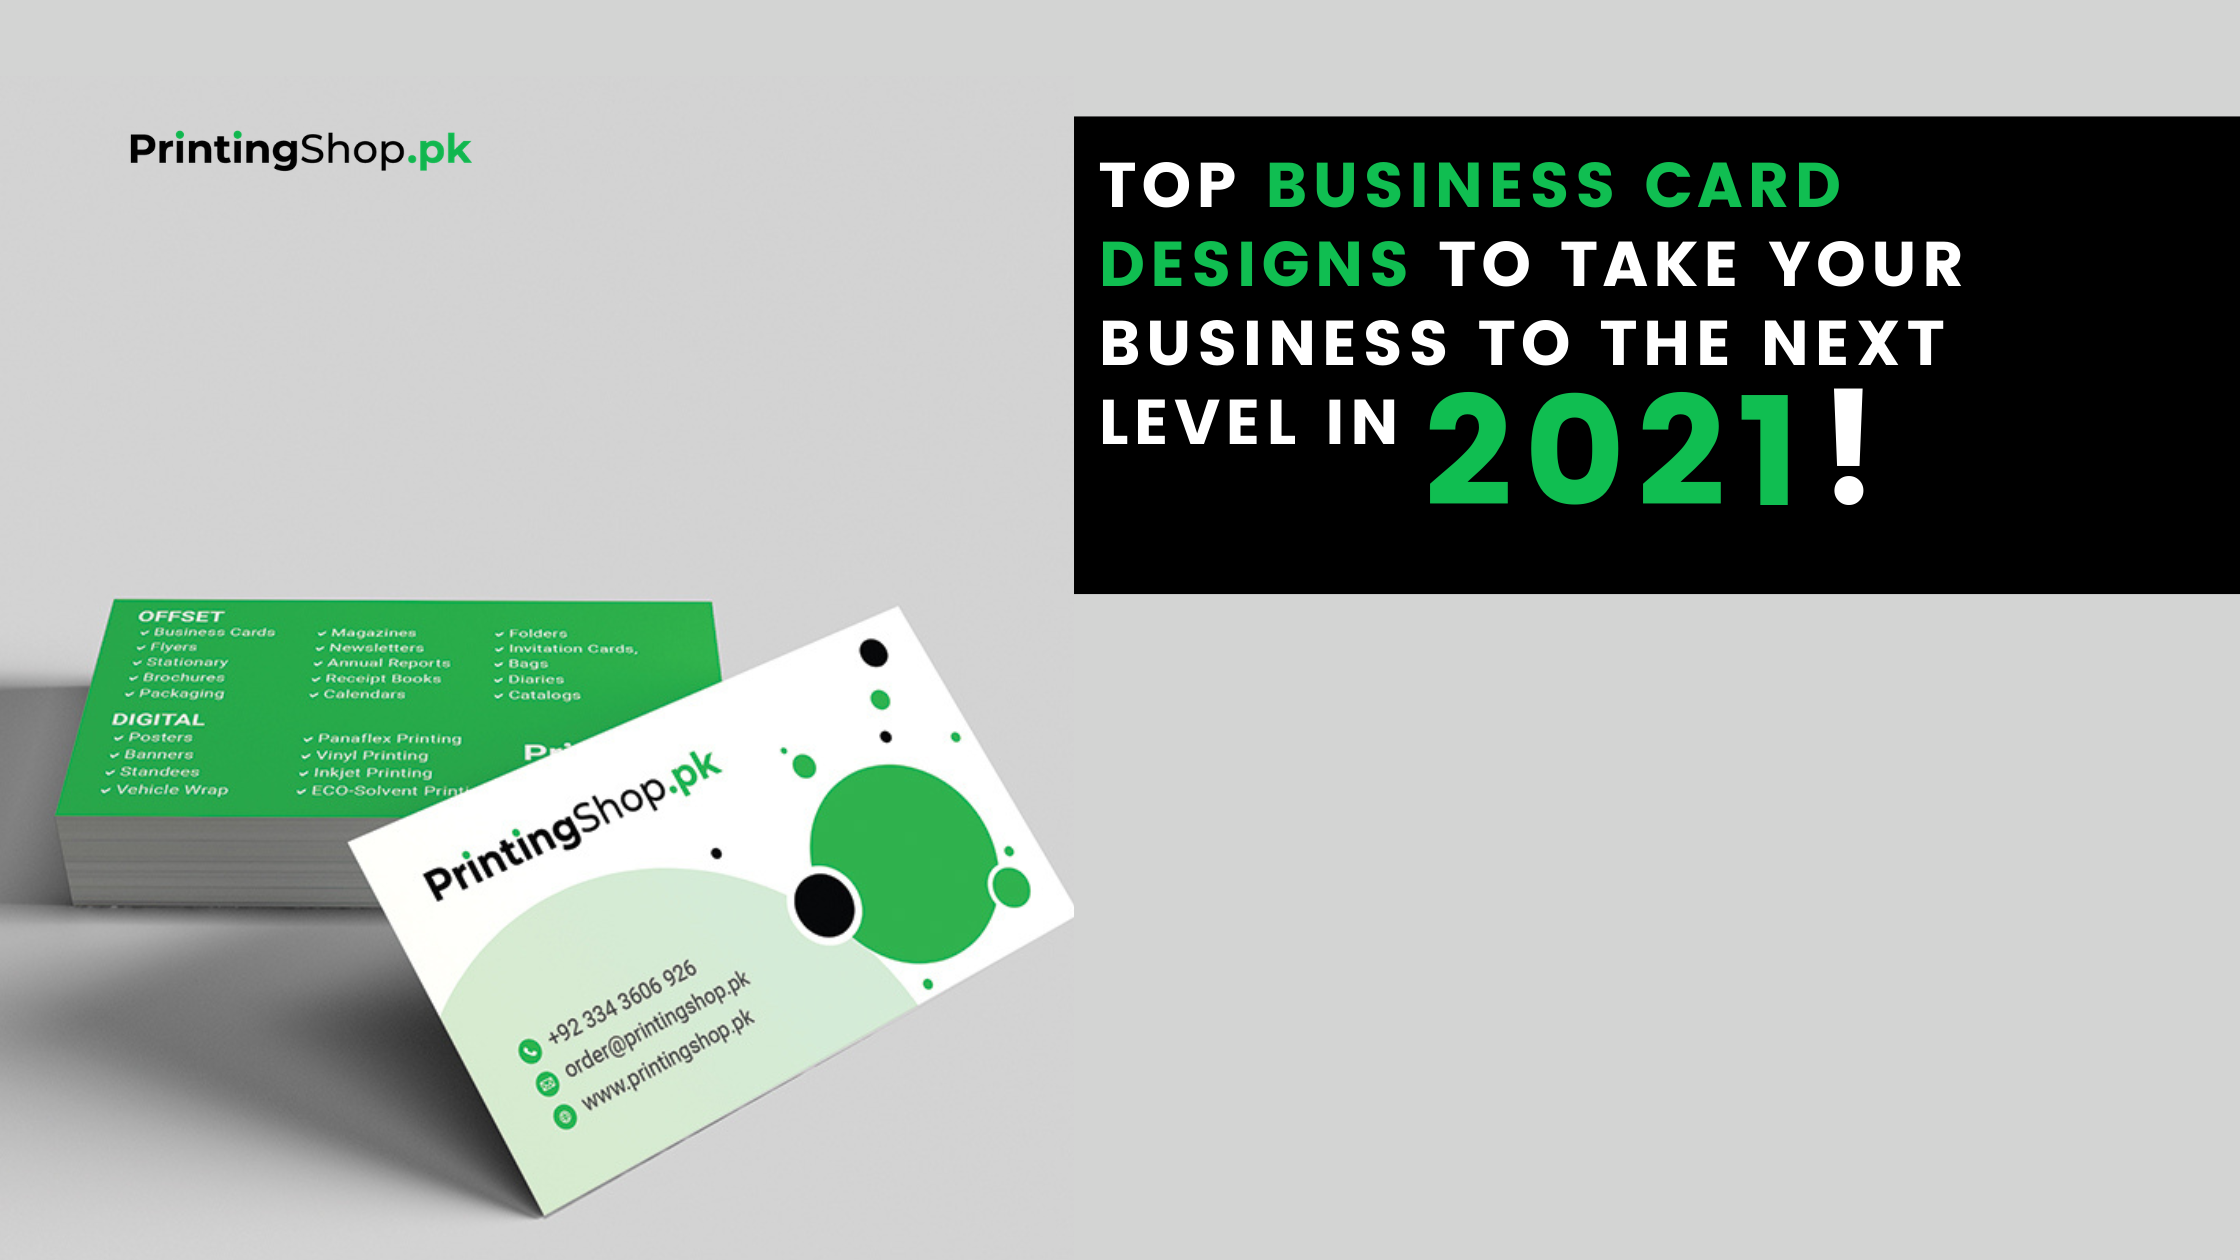 Top Business Card Designs to Take Your Business to The Next Level In 2021!